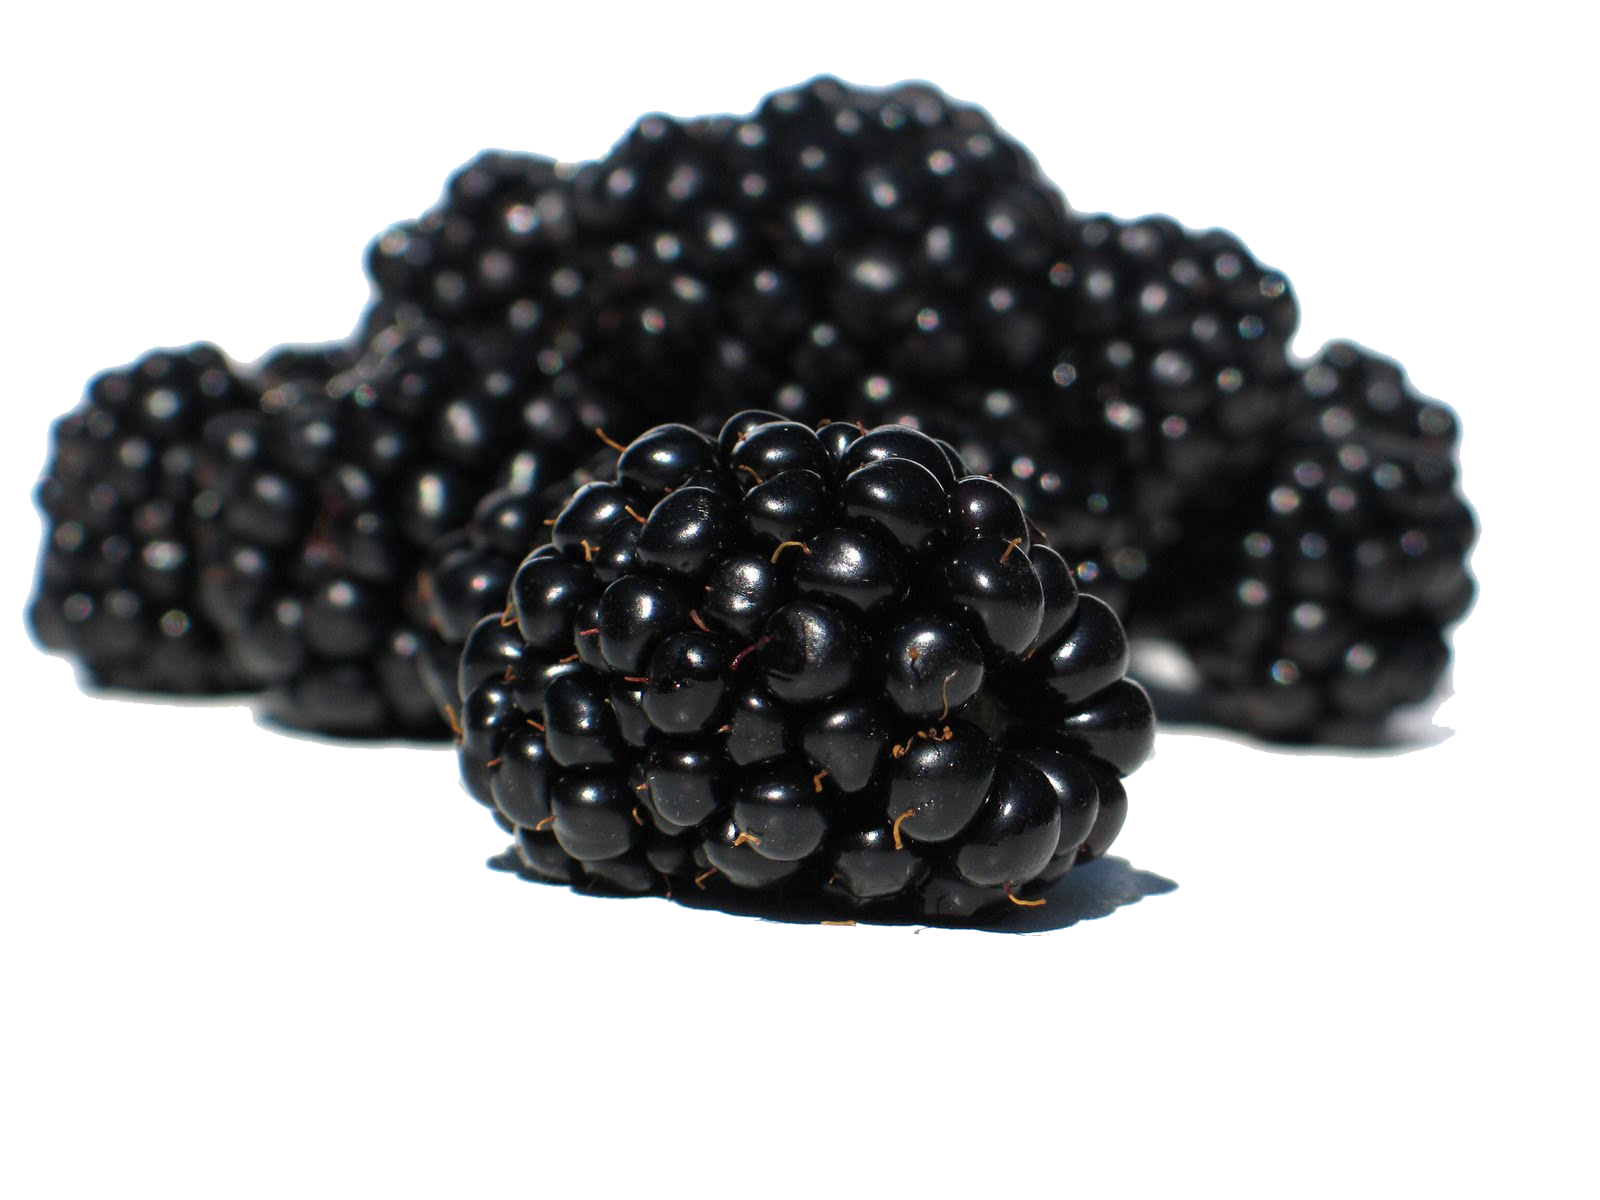 Blackberry png images free. Berries clipart berrie